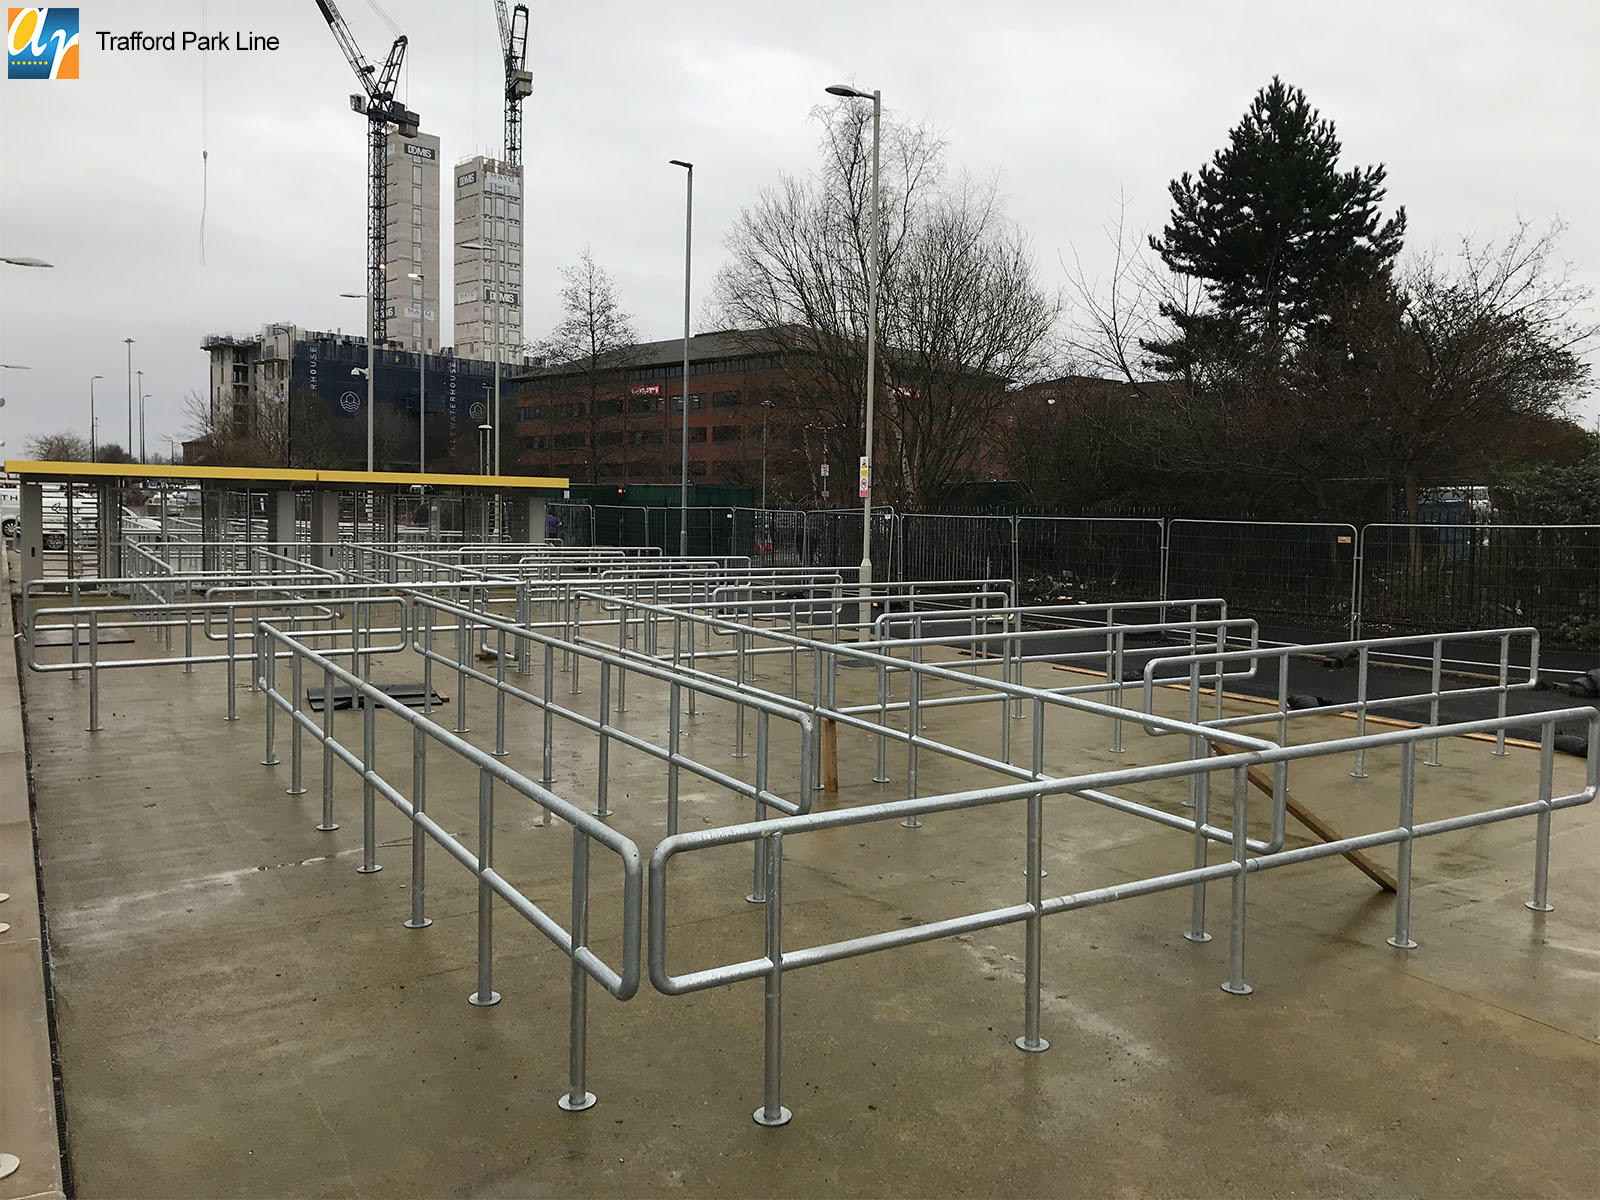 Trafford Park Line metal railings